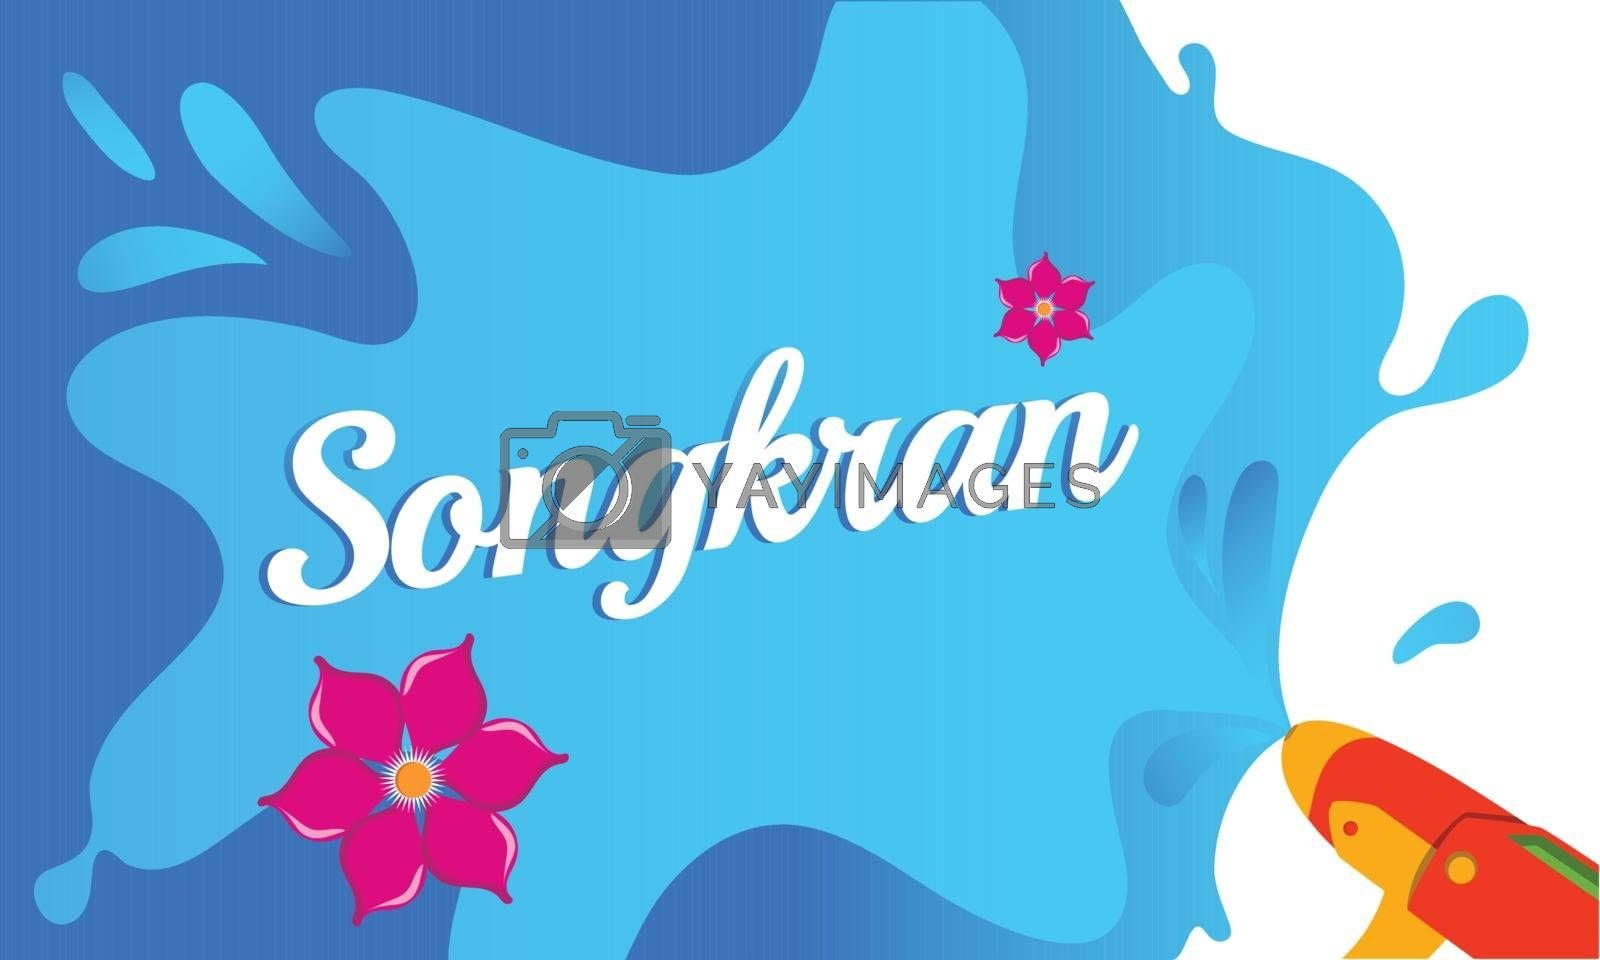 Royalty free image of Stylish text Songkran on colorful background, festival of water  by aispl